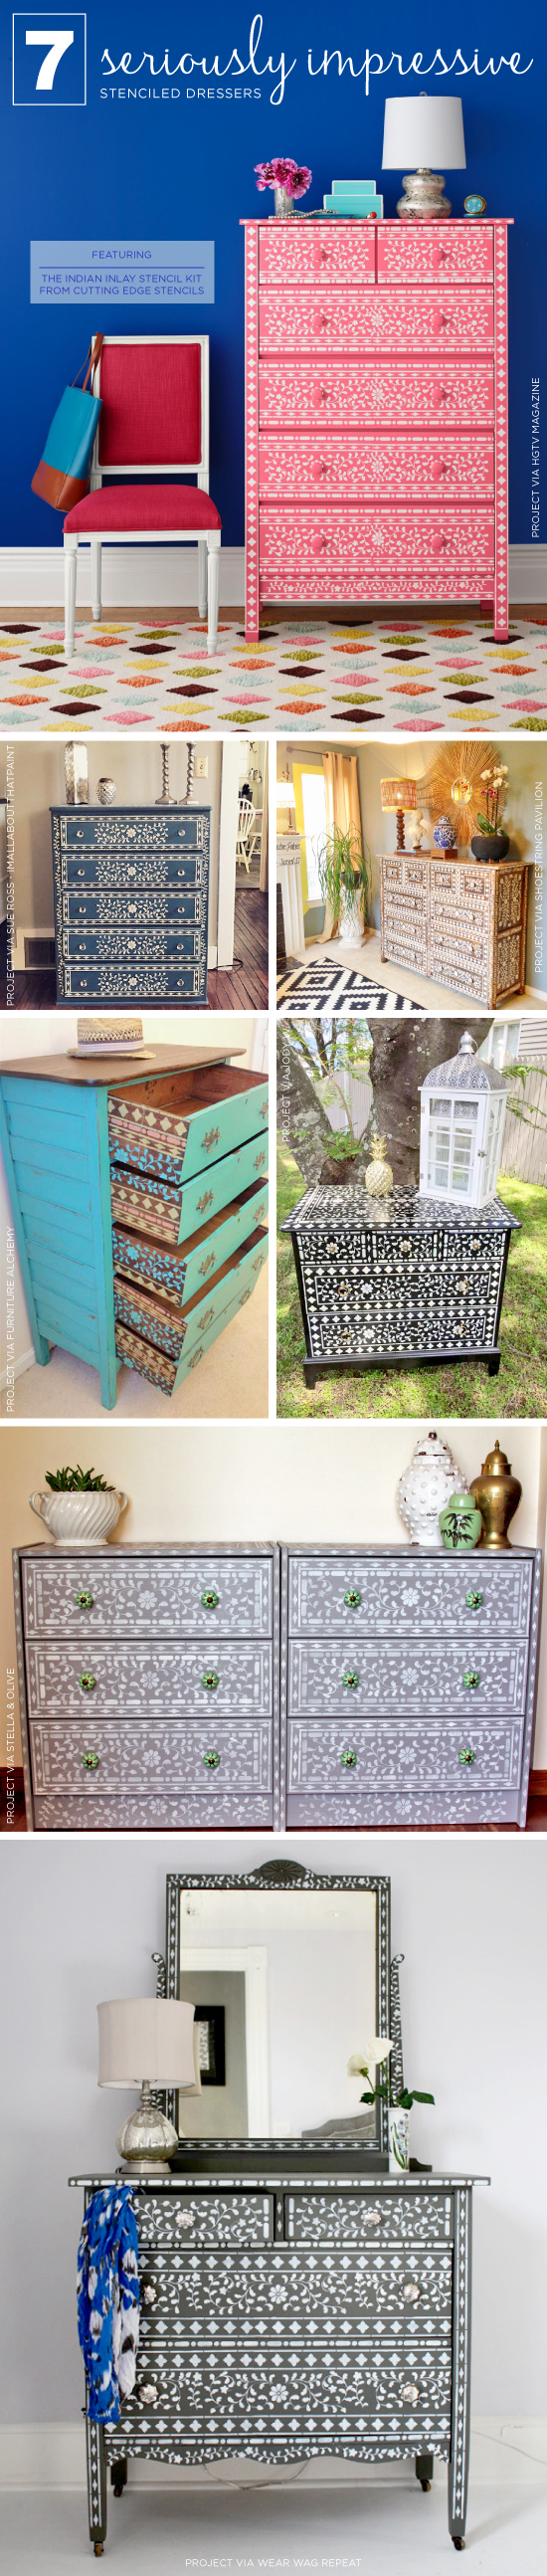 Cutting Edge Stencils shares DIY stenciled dresser ideas using the Indian Inlay Stencil kit. http://www.cuttingedgestencils.com/indian-inlay-stencil-furniture.html